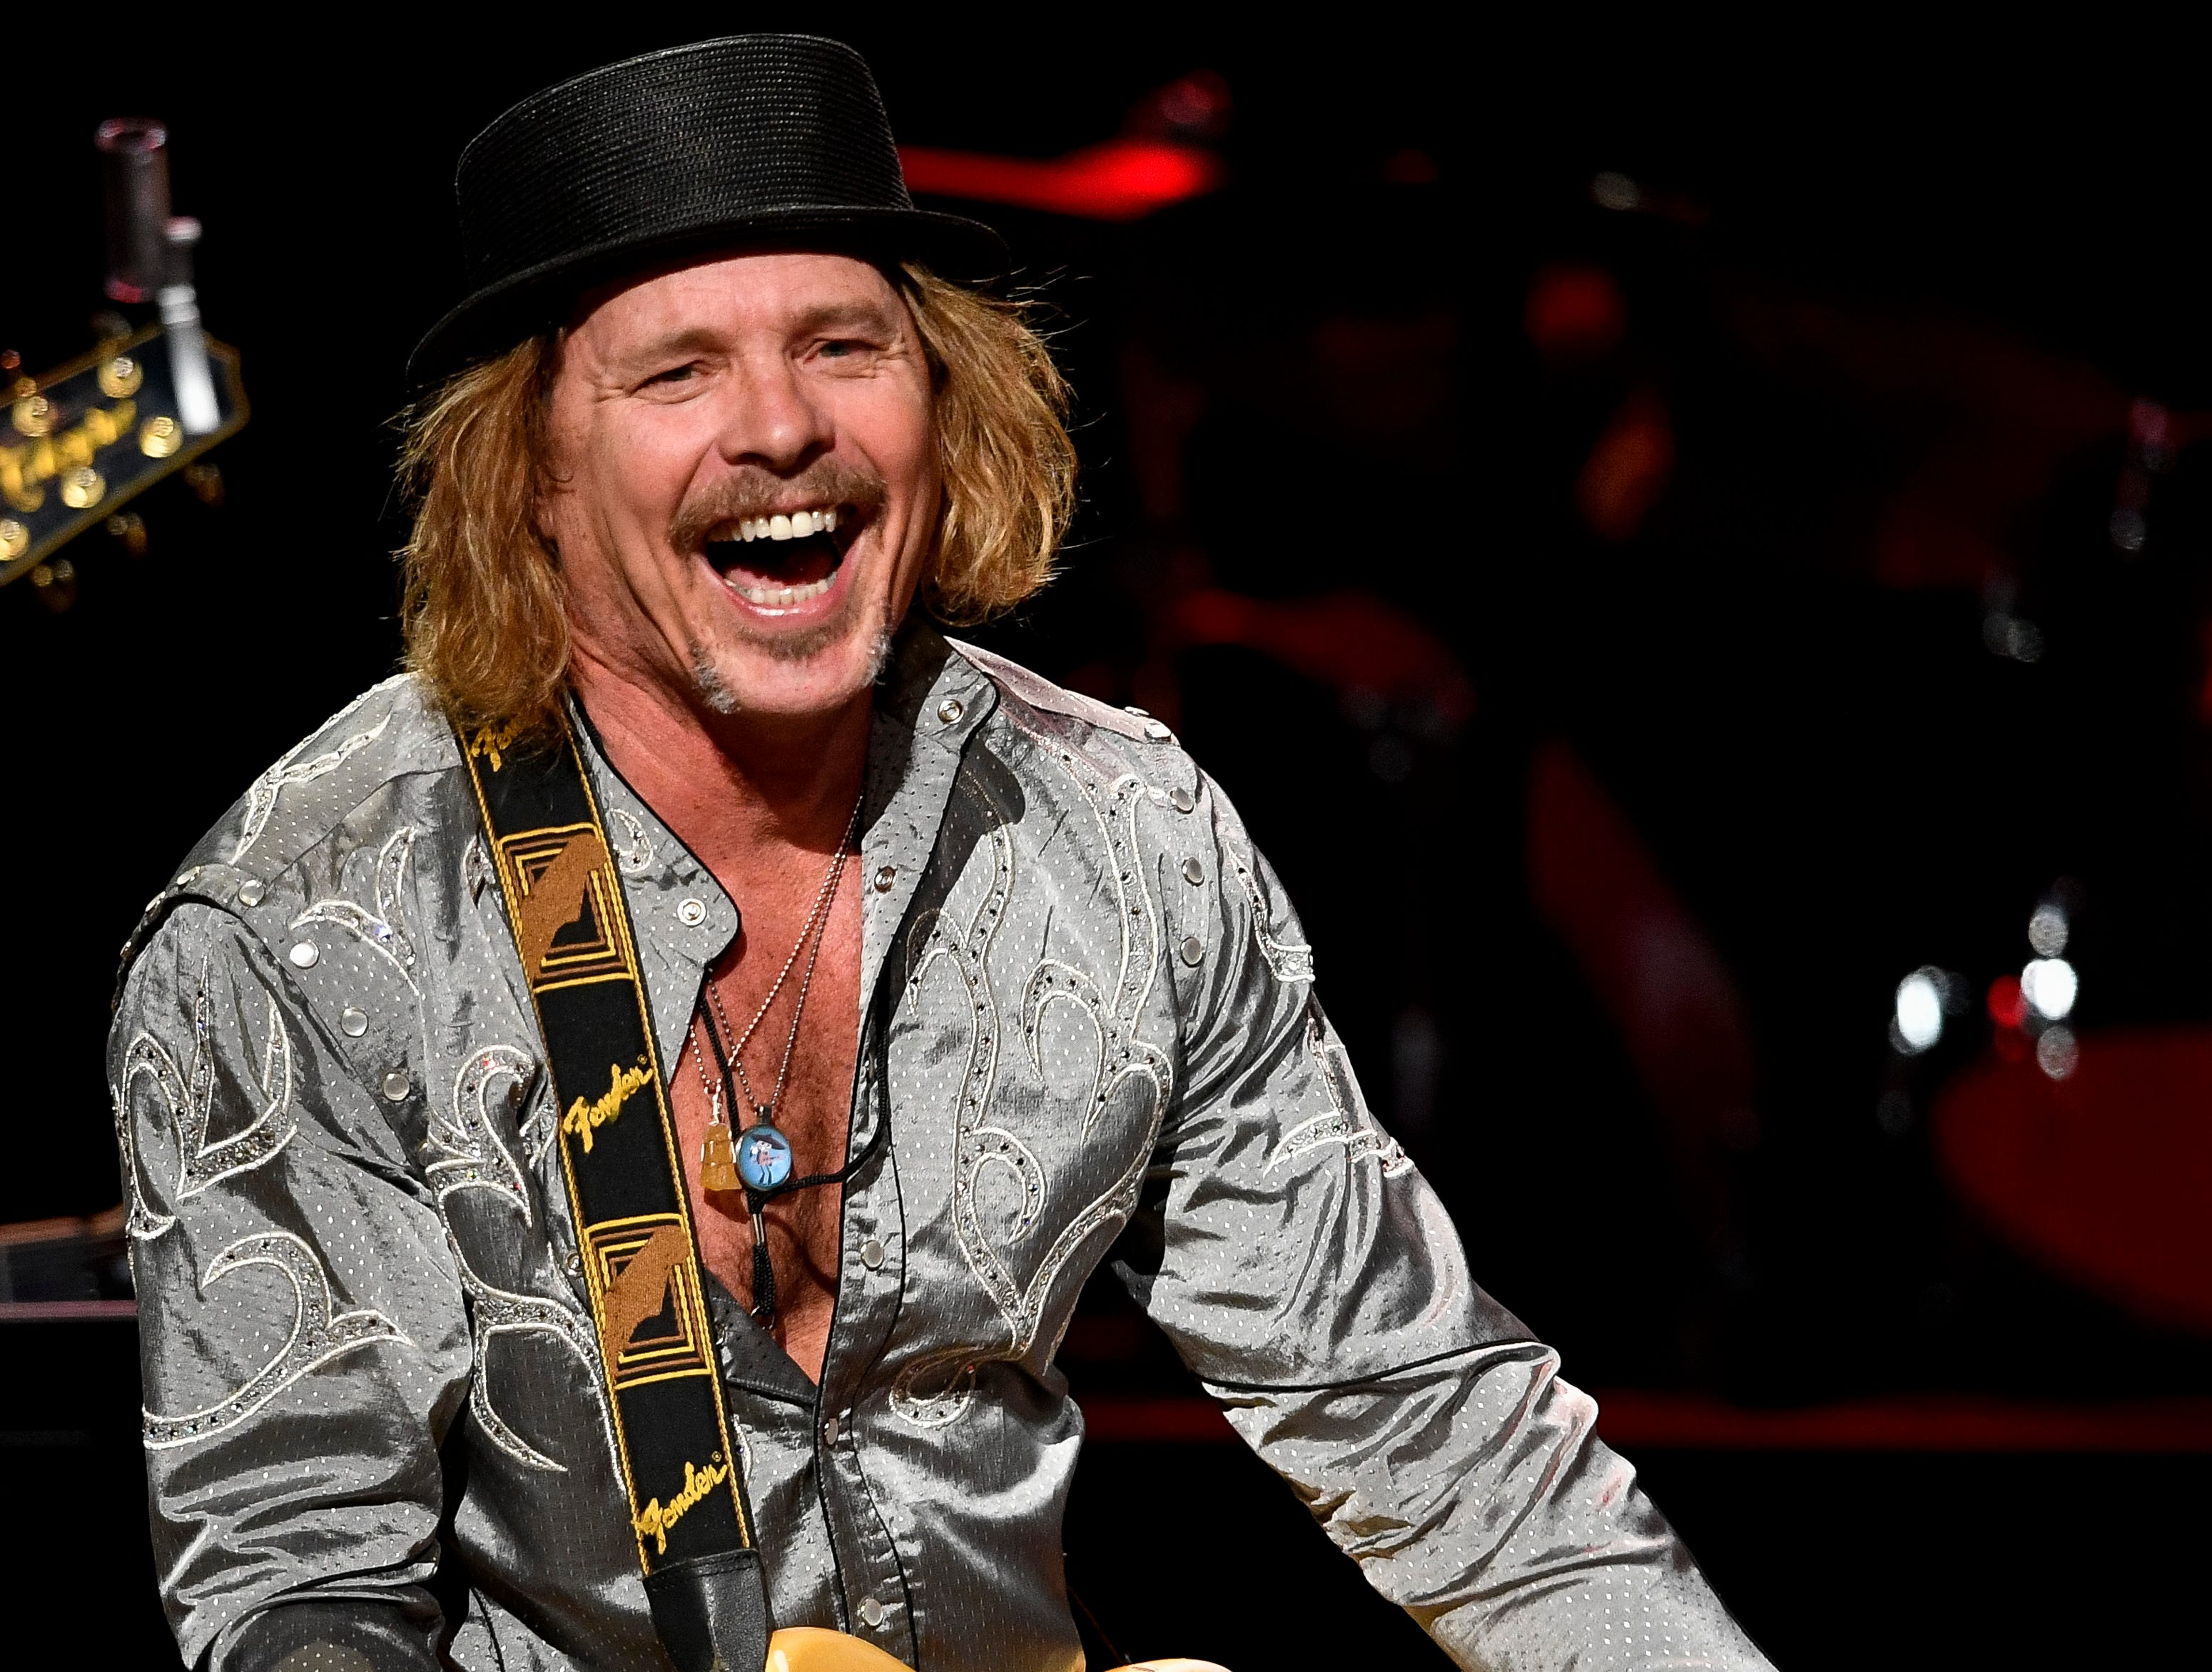 Jeffrey Steele performs during the C'Ya On The Flipside Benefit Concert at the Grand Ole Opry House in Nashville, Tenn., Wednesday, Jan. 9, 2019.